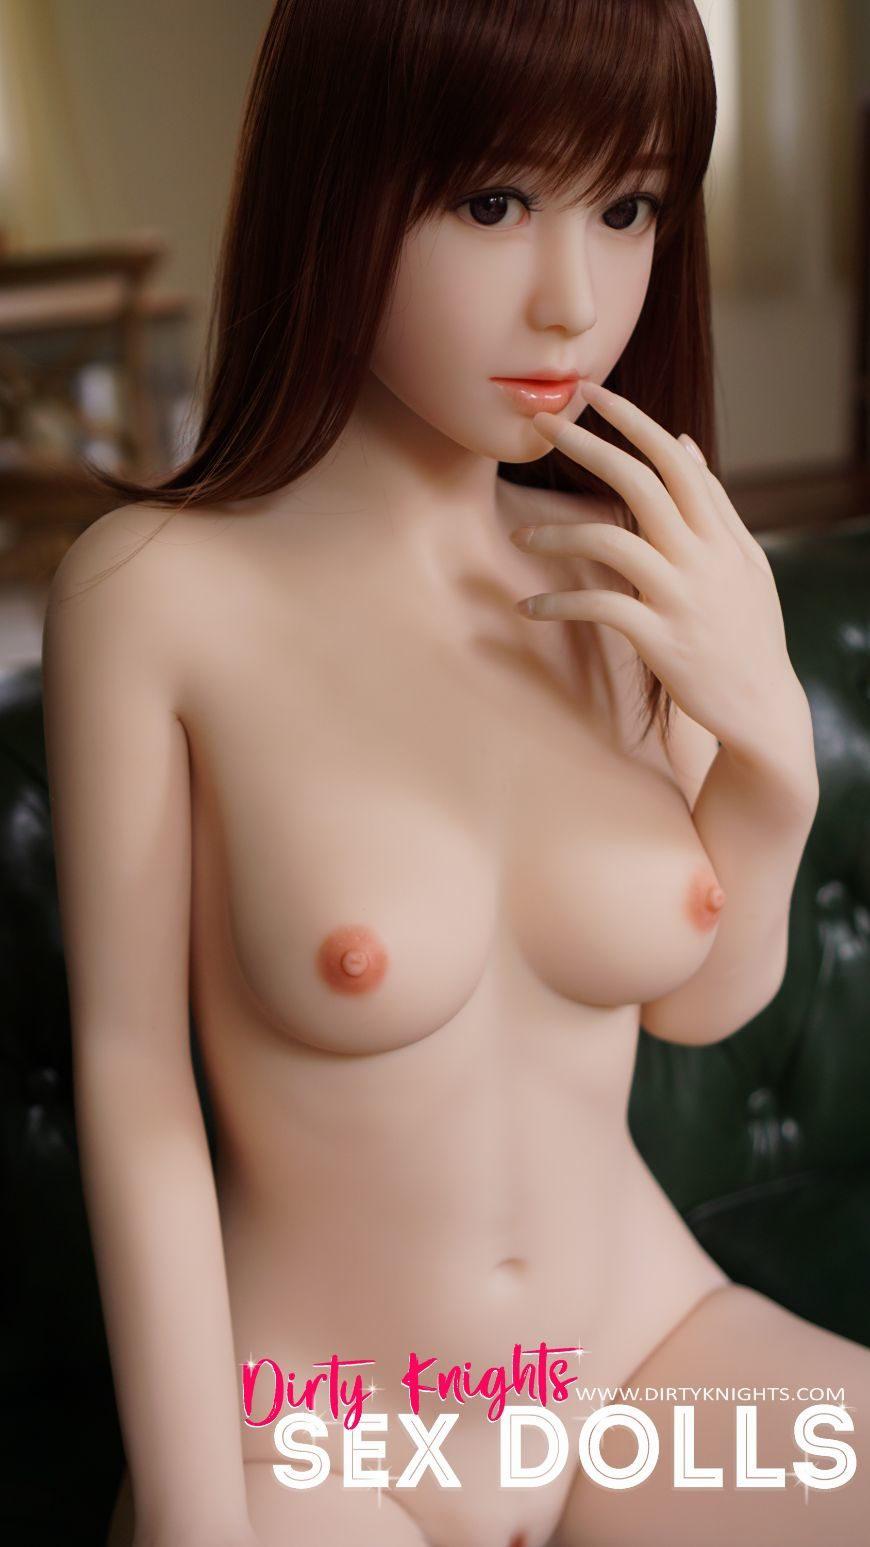 Sasa Sex Doll posing nude for Dirty Knights Sex Dolls (2)